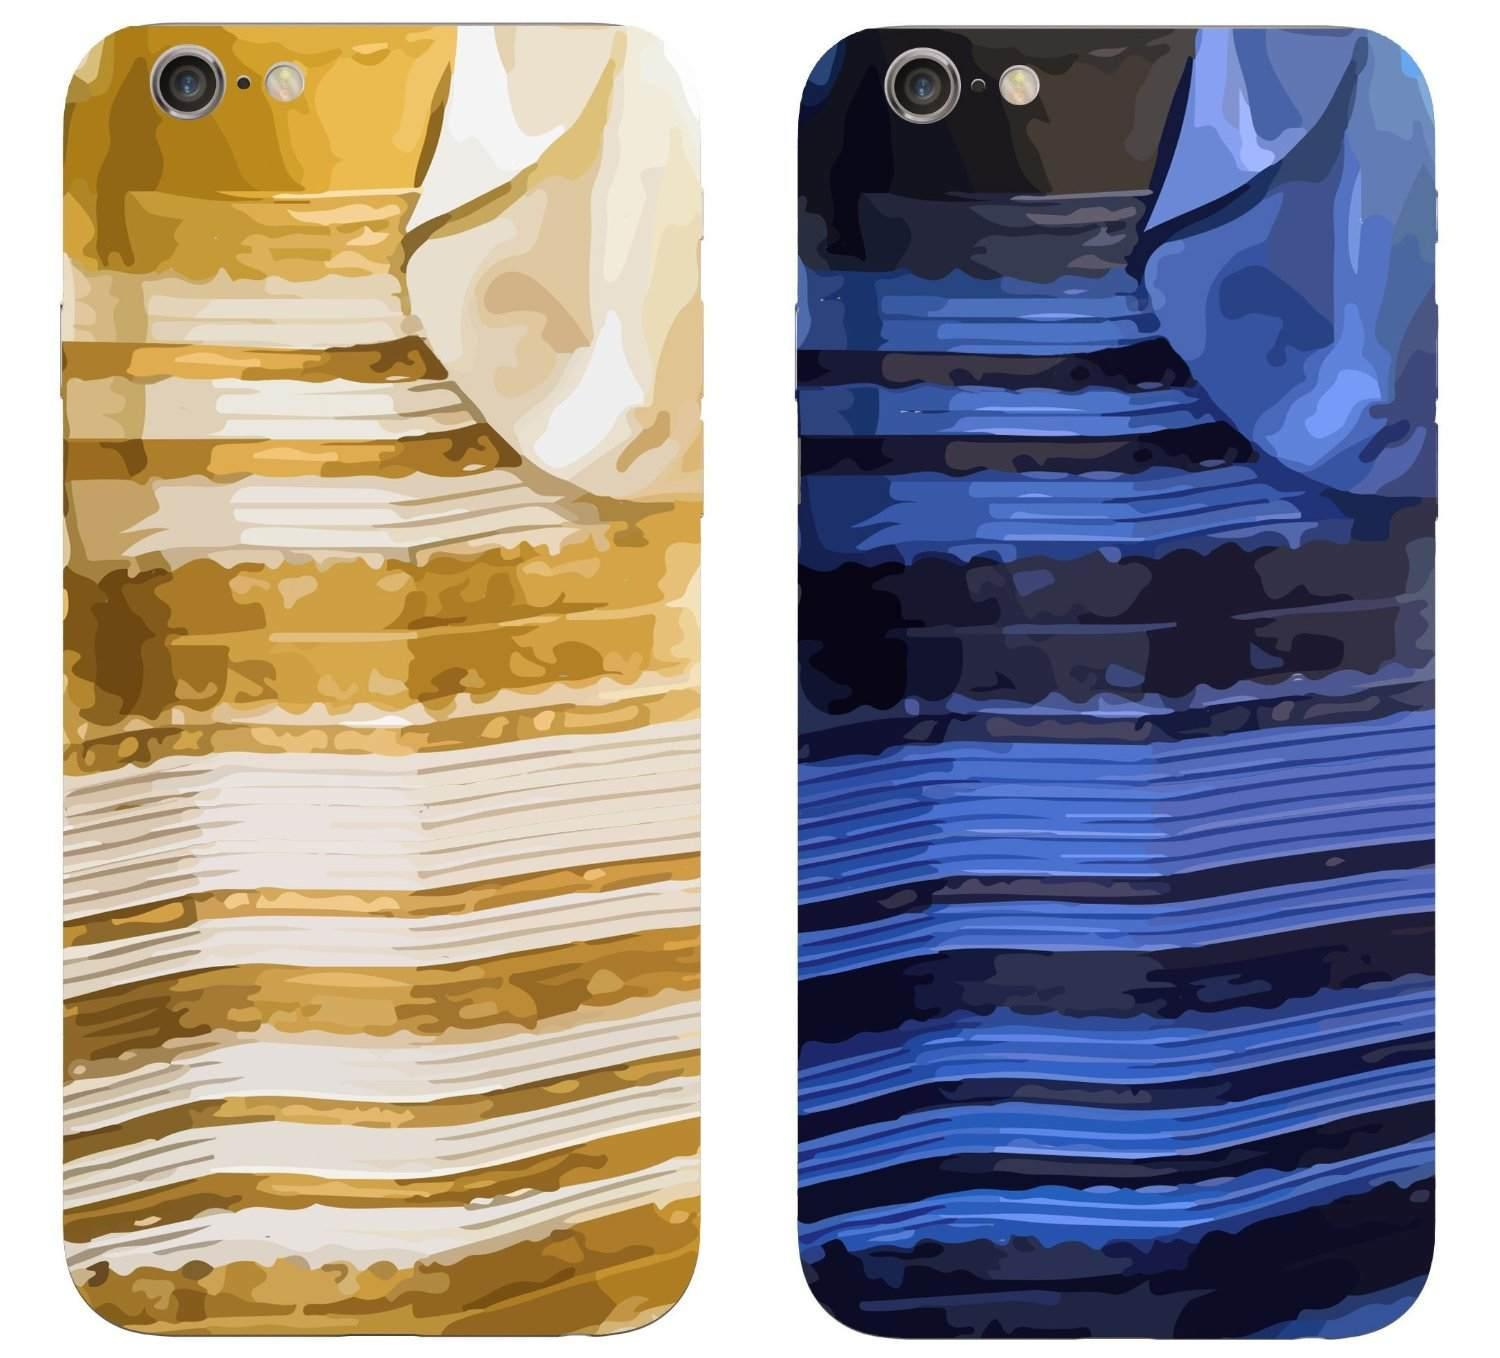 Add a #whatcoloristhisdress case to your iPhone's wardrobe